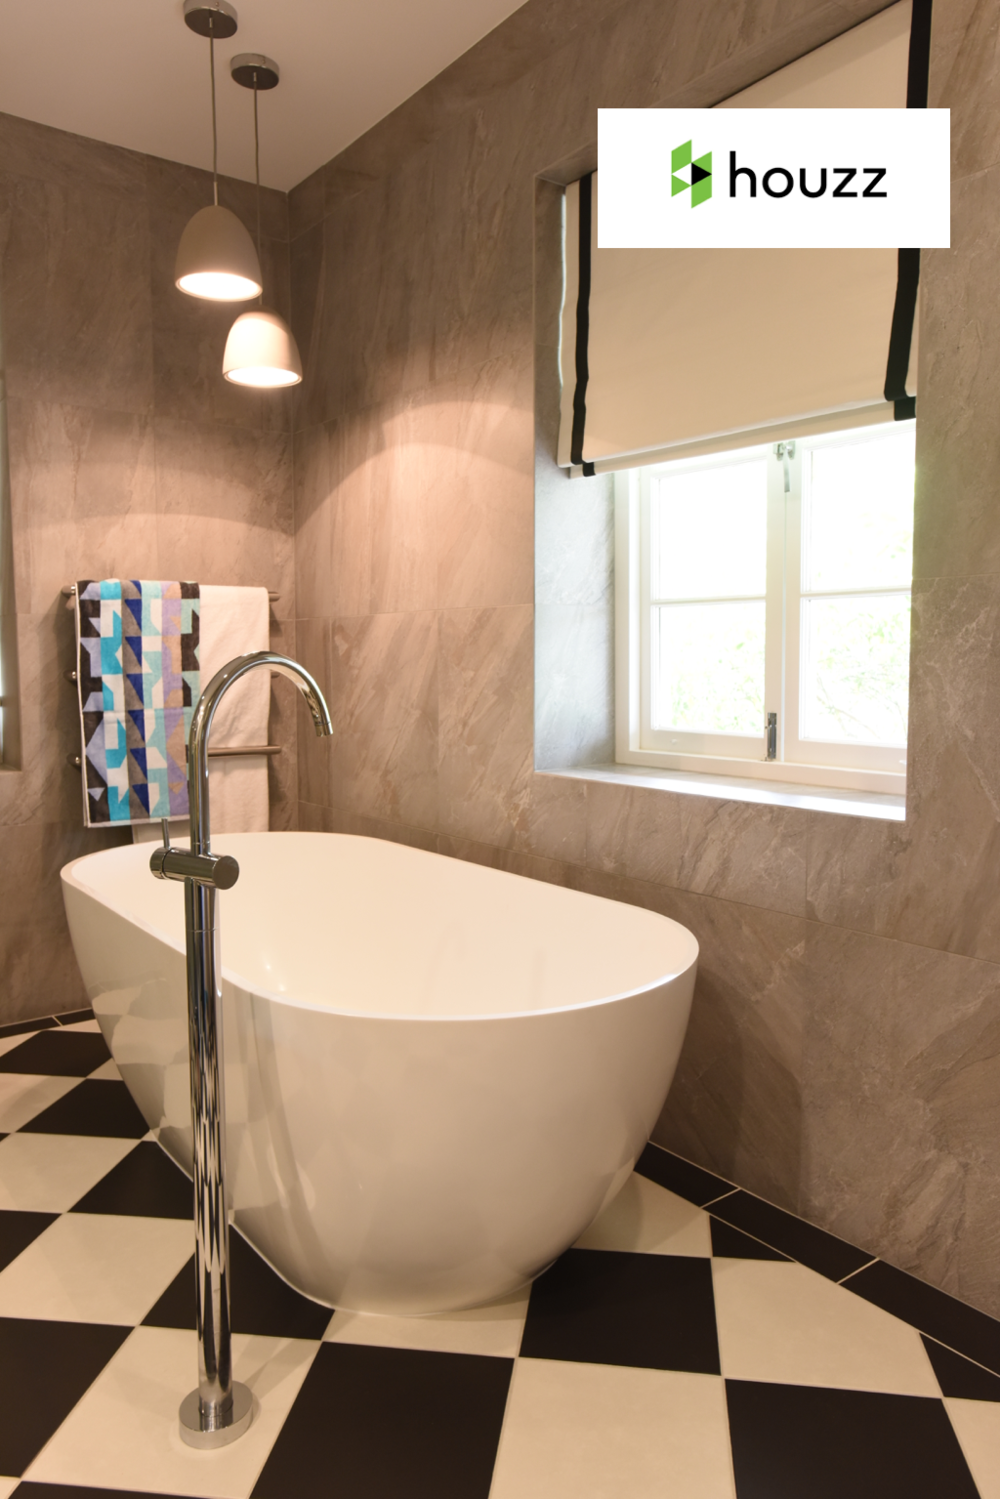 HOUZZ  - May 2016  How the Bathe Like a Parisian